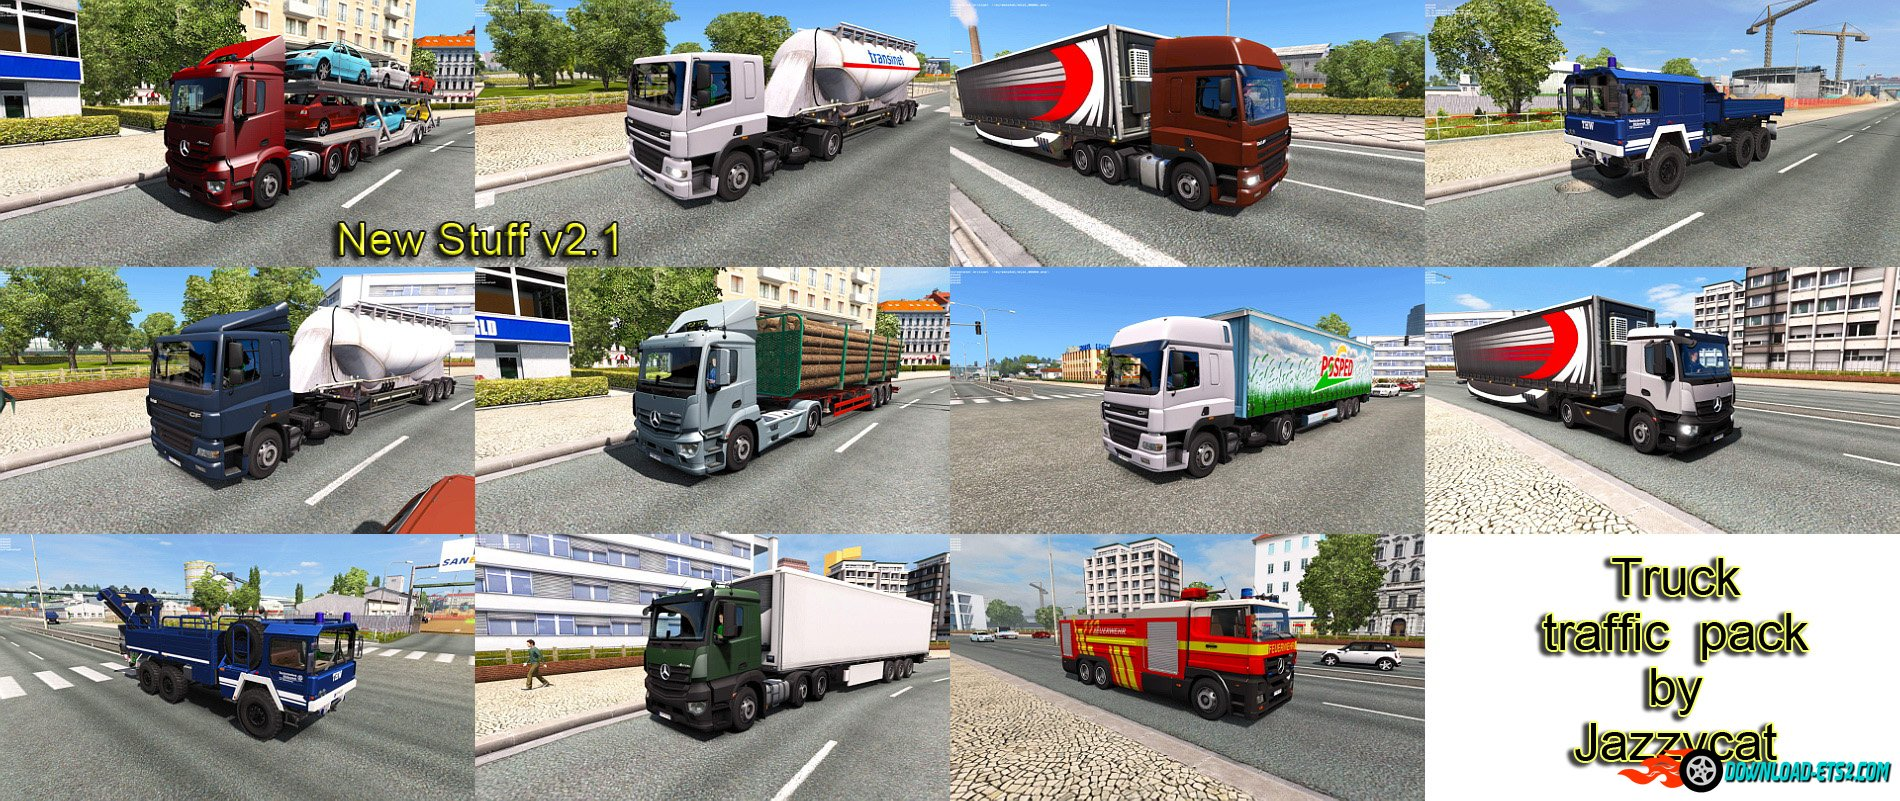 Truck traffic pack v2.1 by Jazzycat